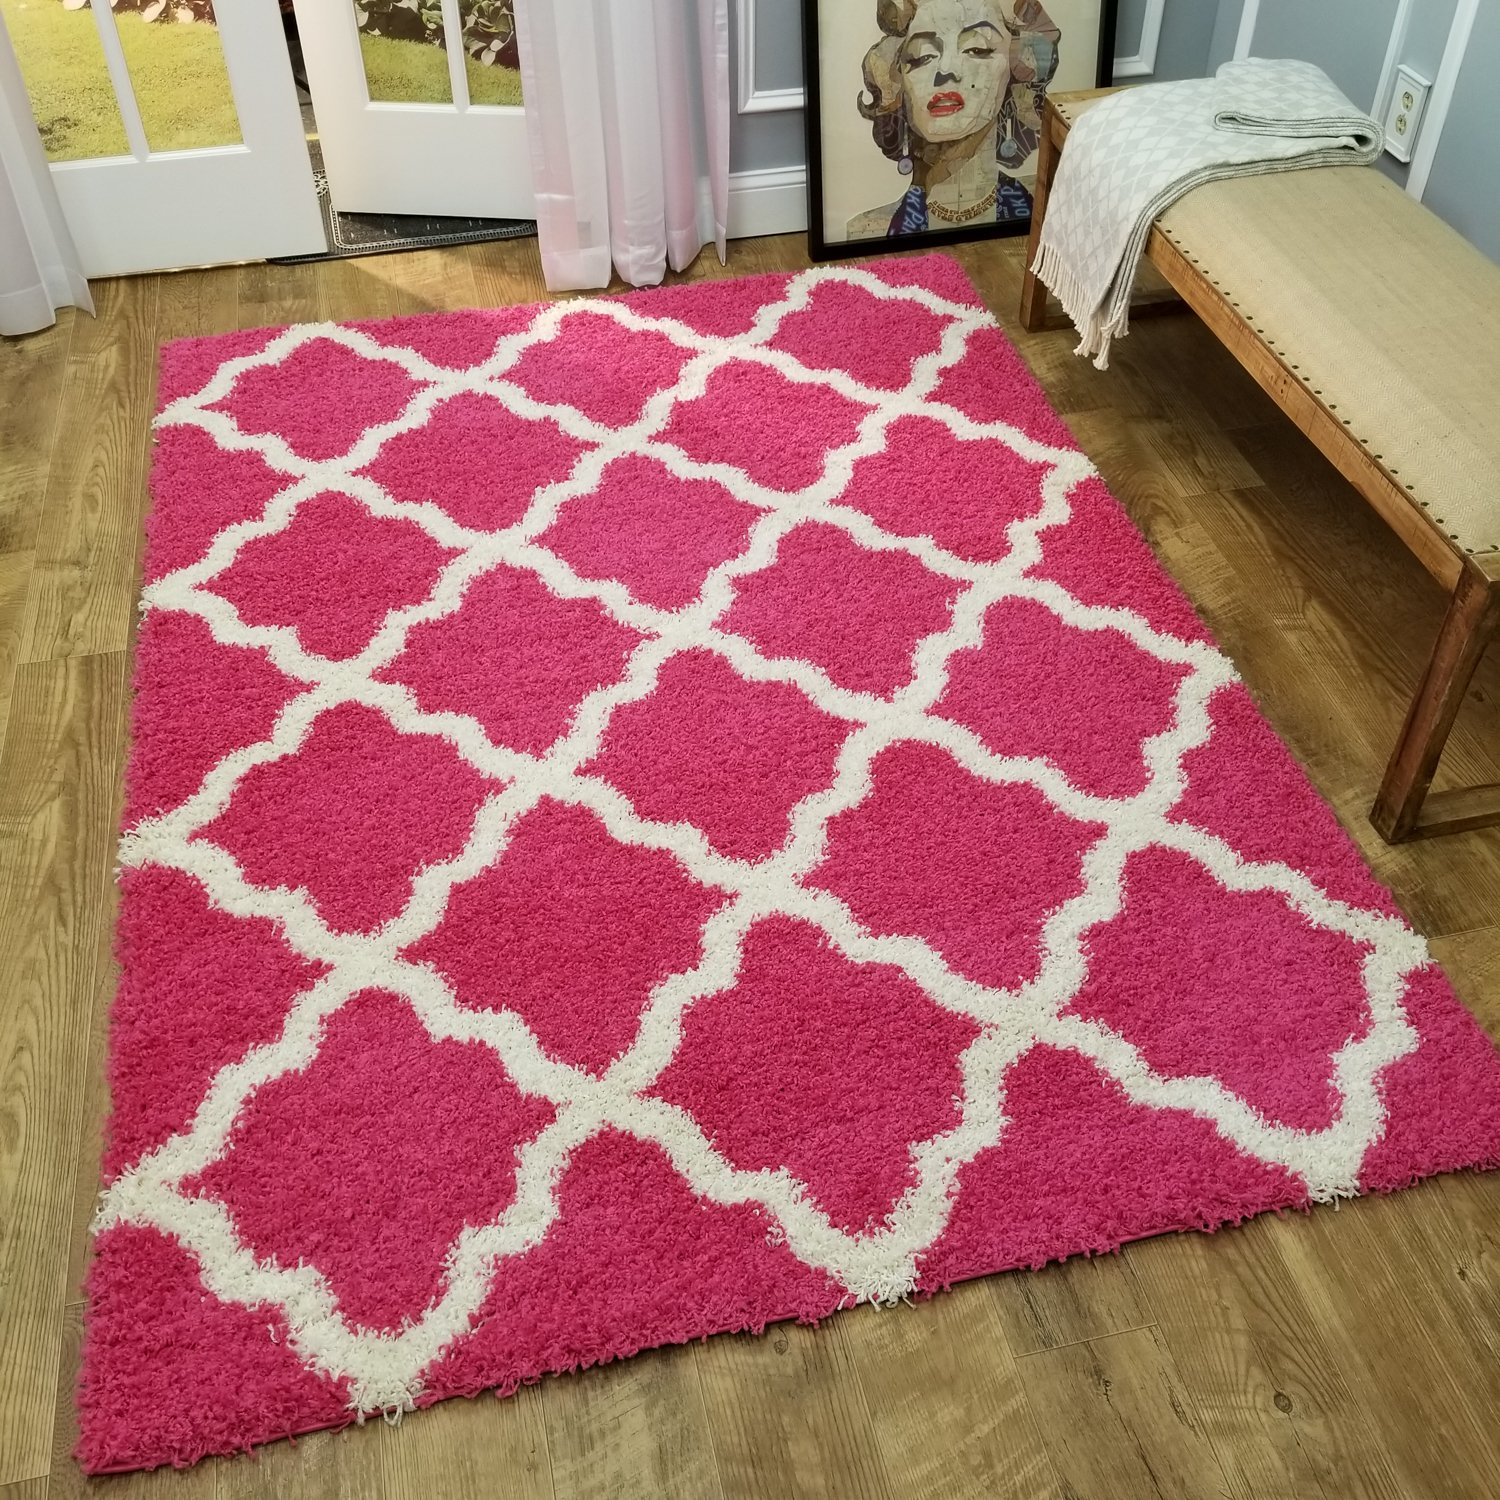 Amazon Com Maxy Home Shag Area Rug 3x5 New Moroccan Trellis Pink